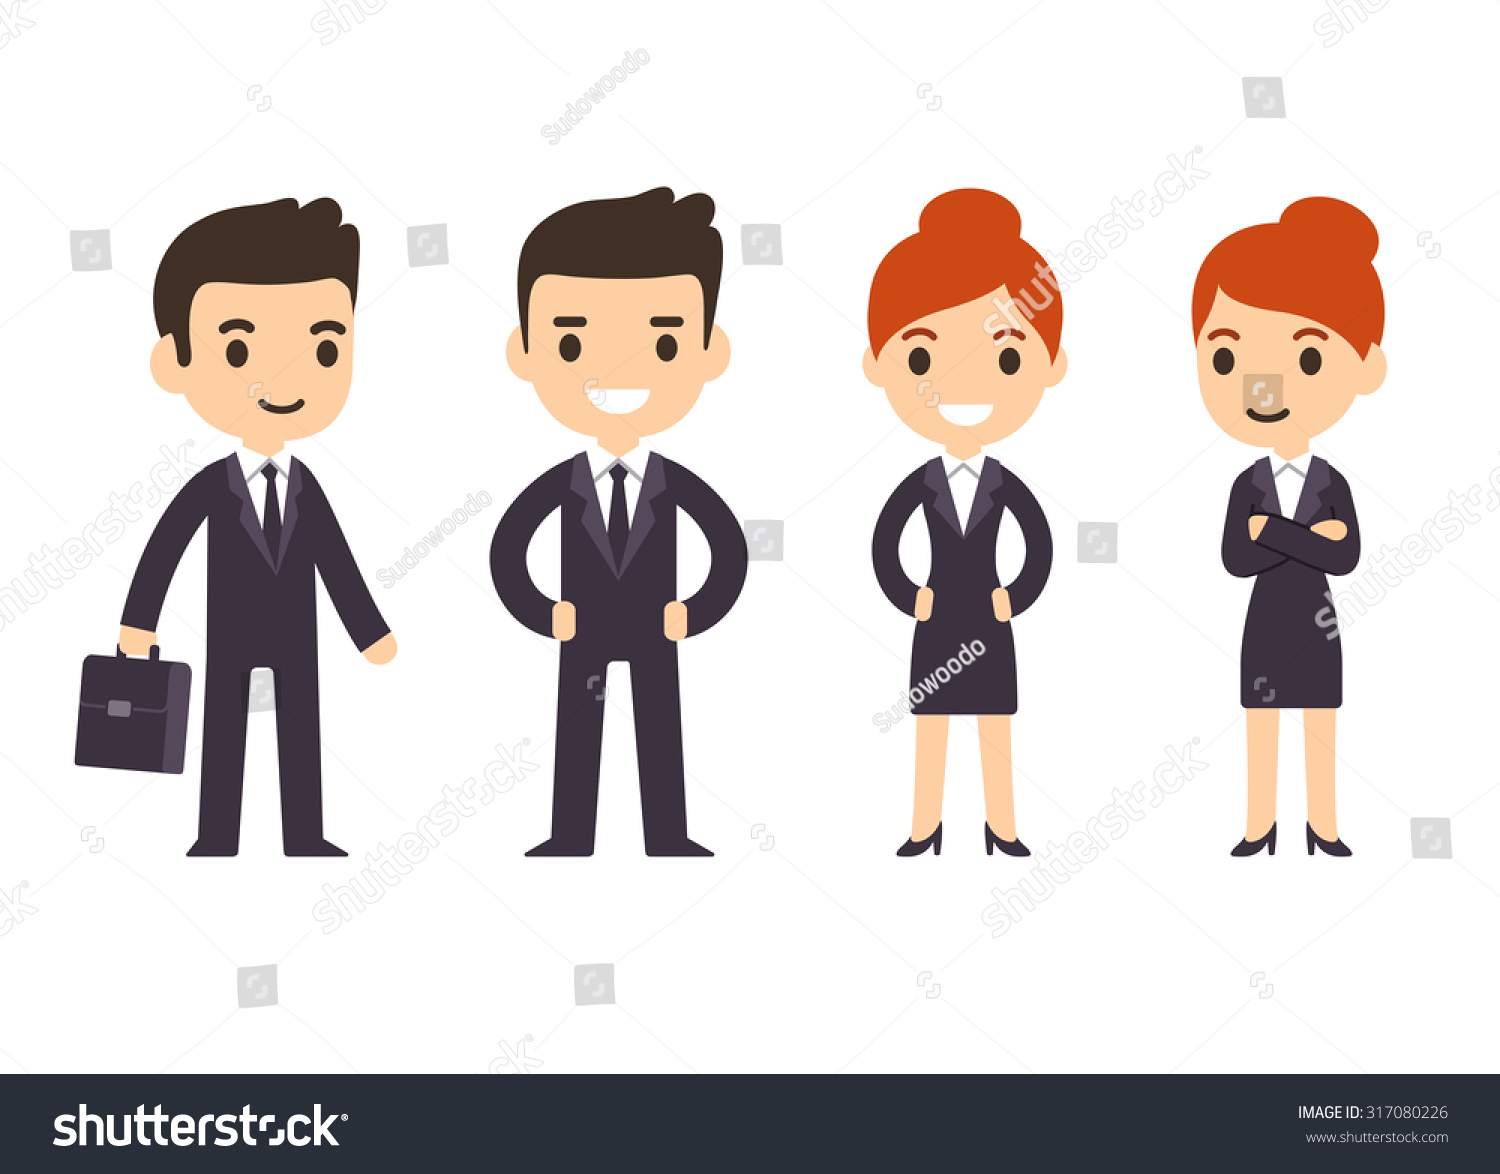 young business people man woman cartoon stock vector